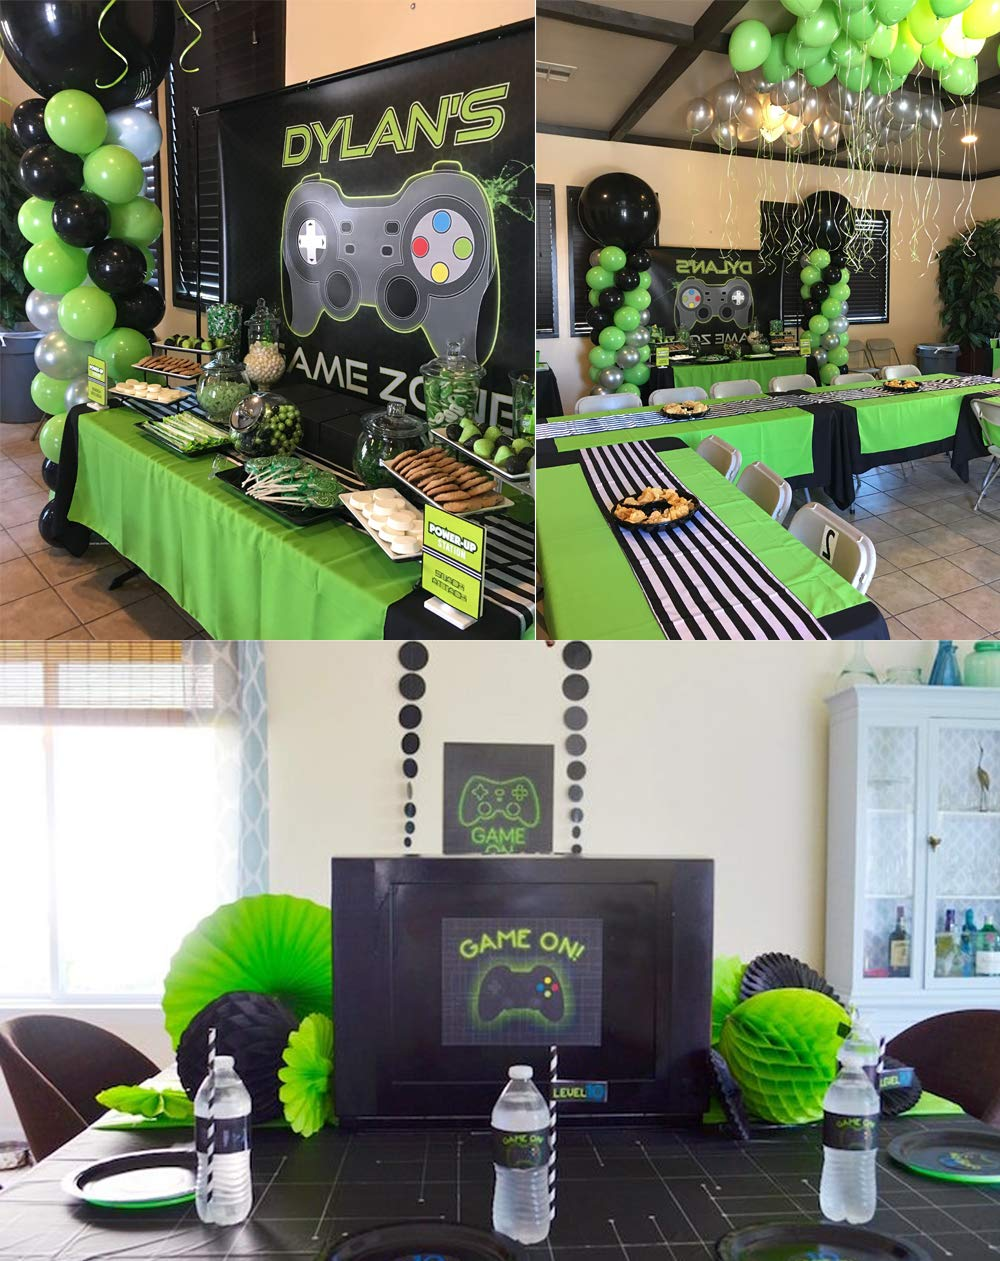 Video Game Party Supplies Set,Including Balloons Green Tablecloth and Pom Poms Paper Balls Perfect for Gamer Fans Kids Game Themed Party Decorations